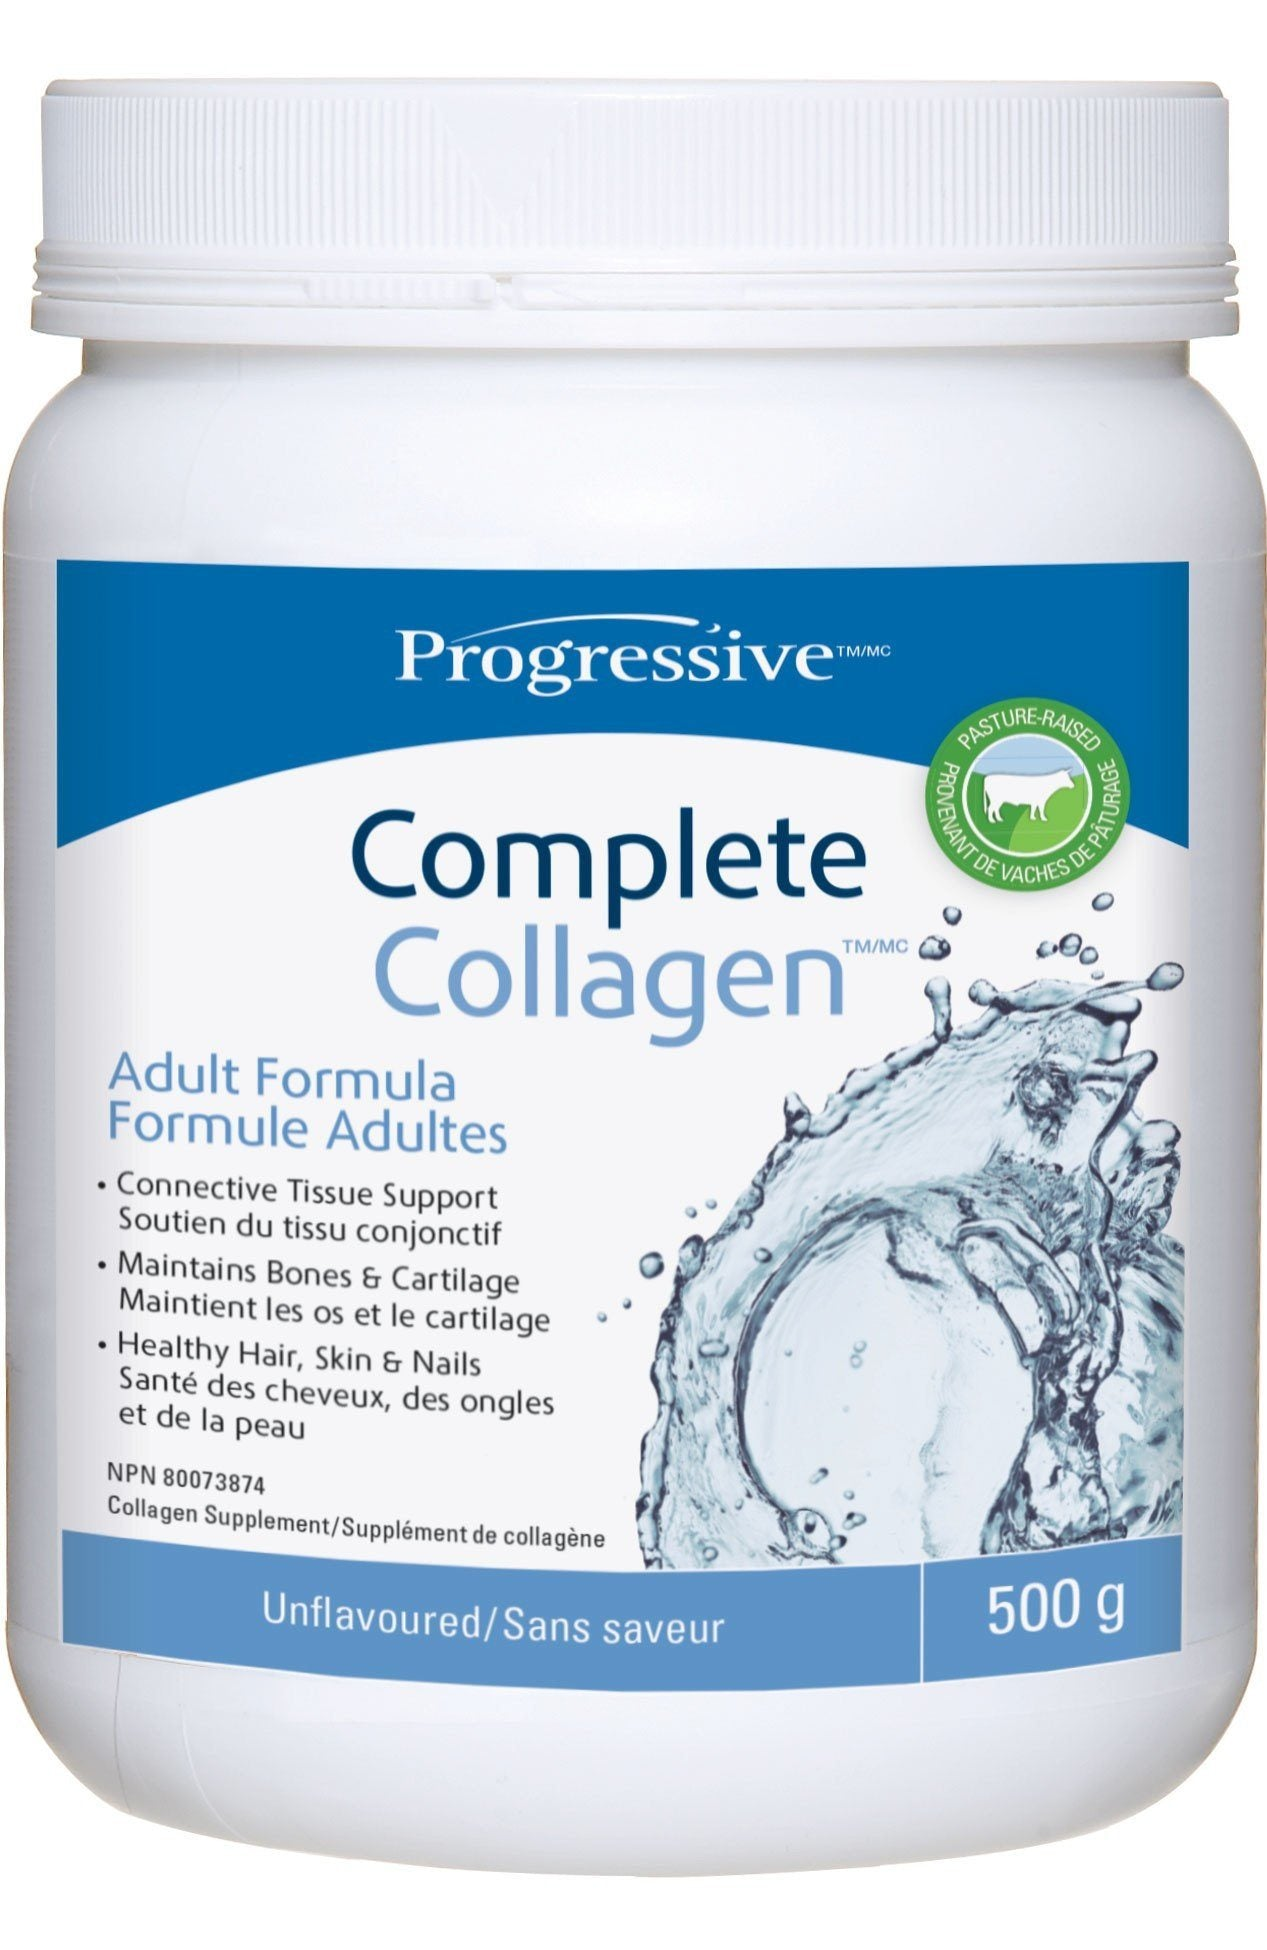 Supplements & Vitamins - Progressive - Complete Collagen Unflavored - 500g